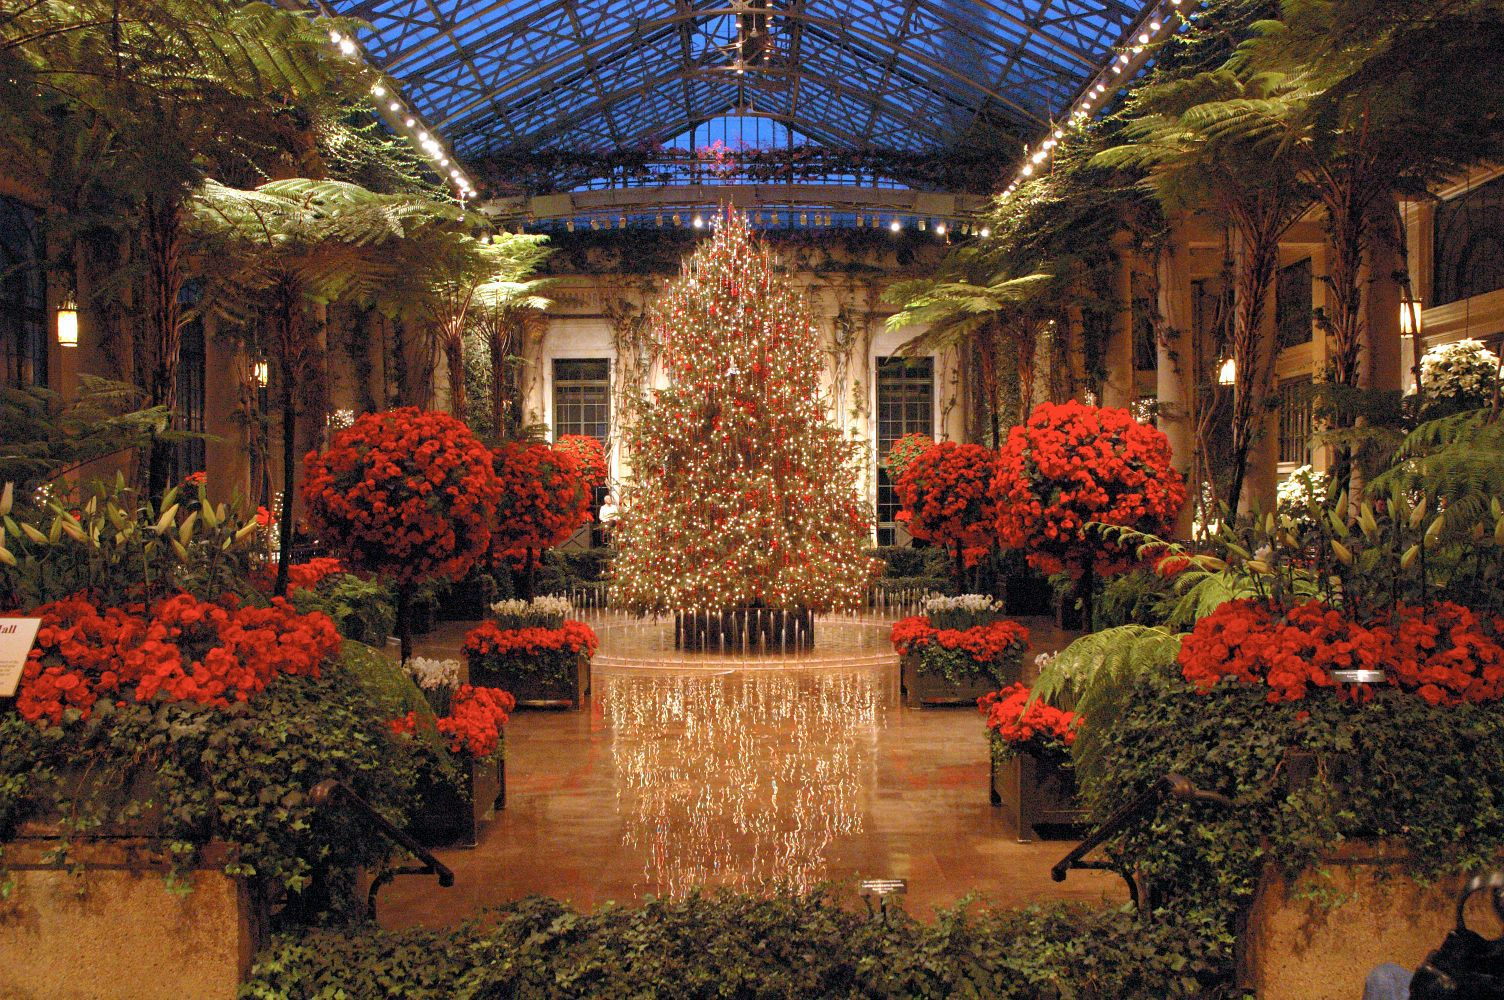 The 10 Best Things to Do in Delaware for the Holidays